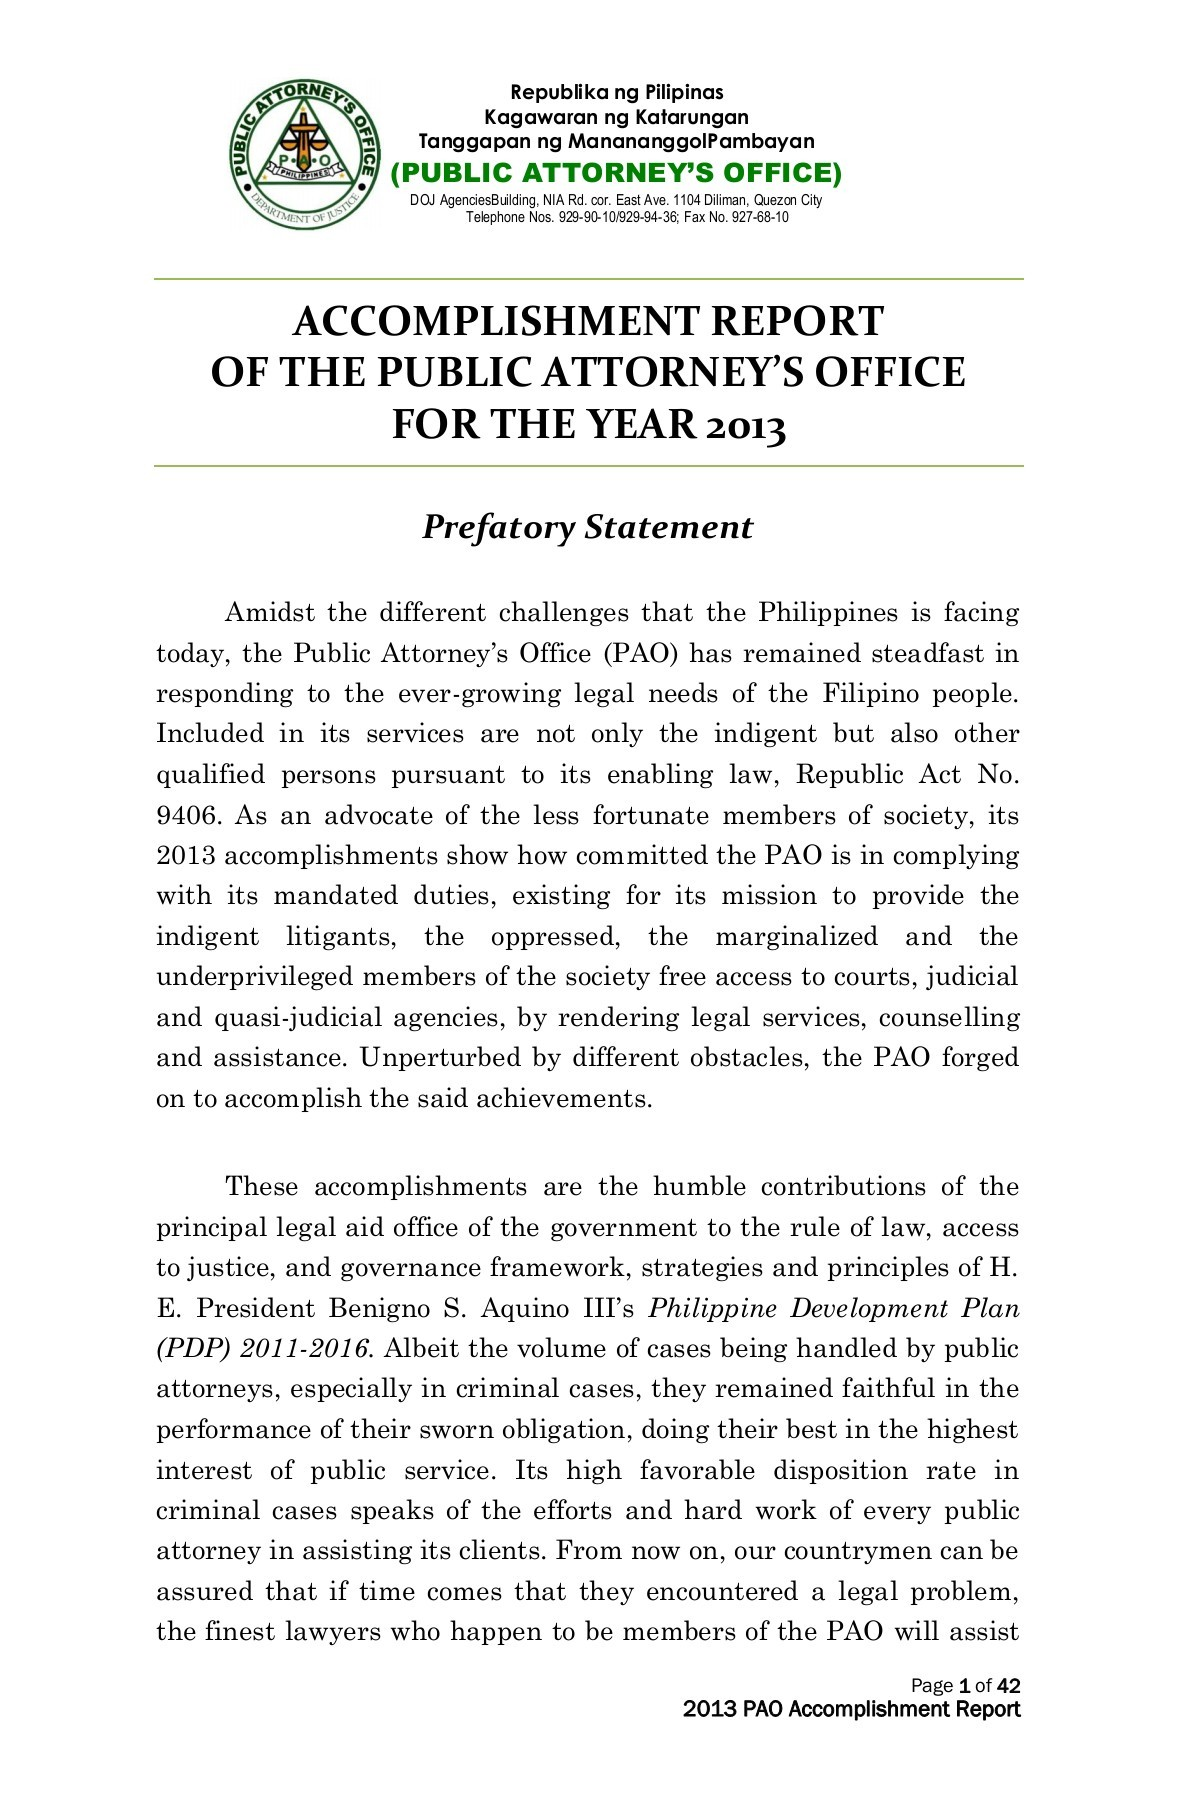 ACCOMPLISHMENT REPORT OF THE PUBLIC ATTORNEY'S OFFICE | FlipHTML5